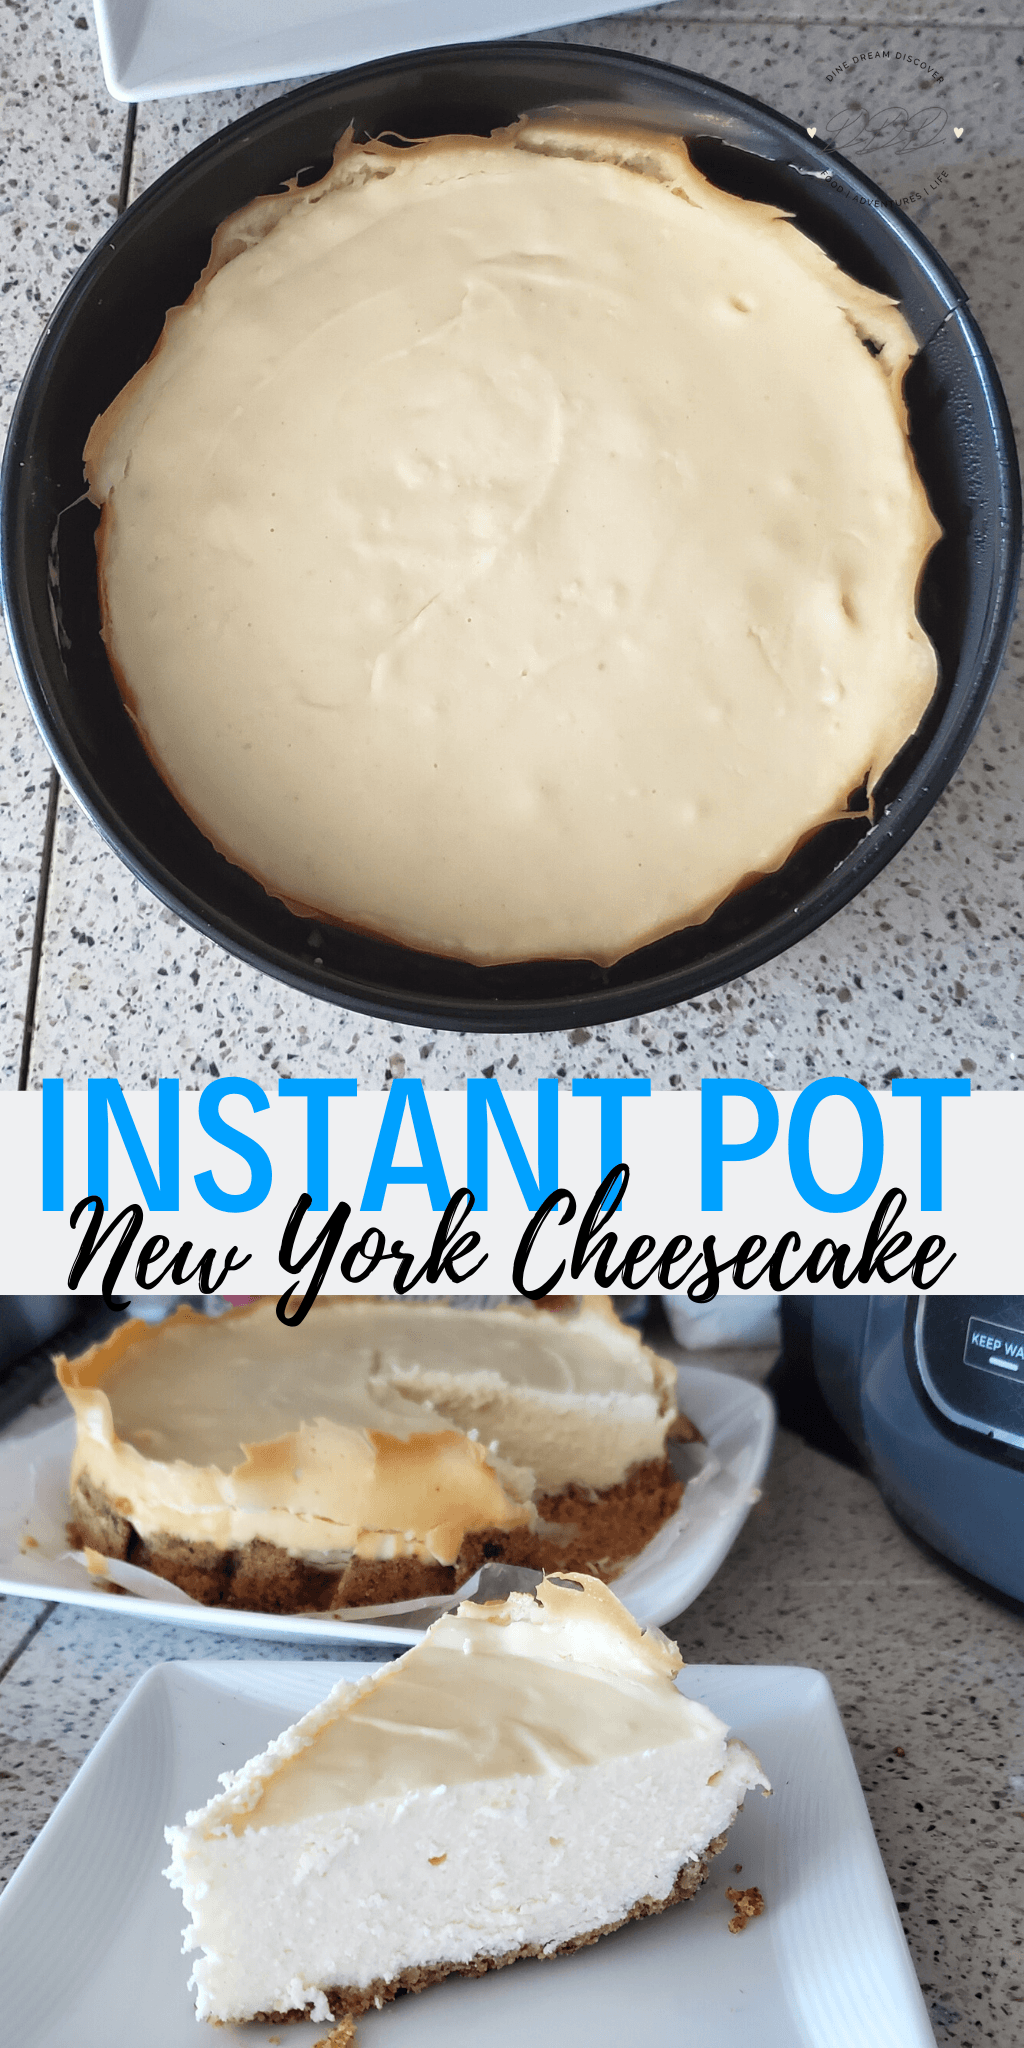 Instant Pot Cheesecake New York Style